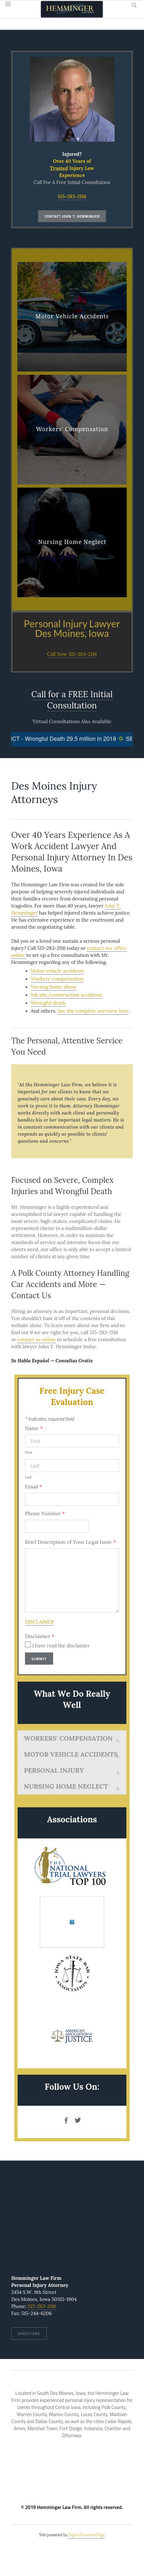 Hemminger Law Firm - Des Moines IA Lawyers